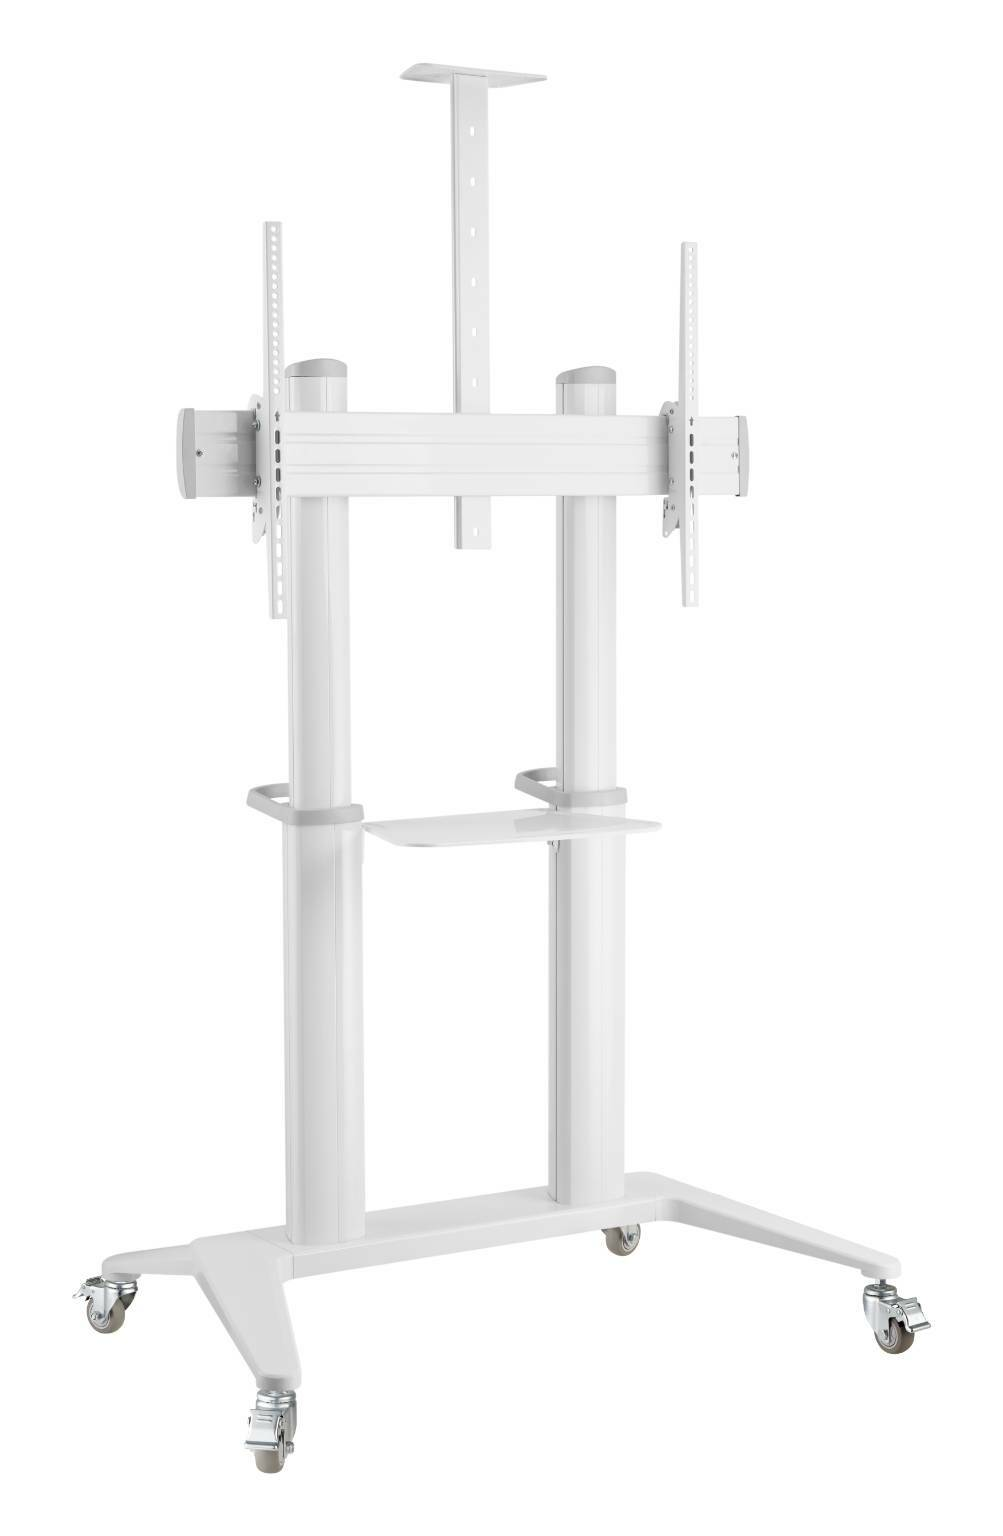 Techly TR supporto TV